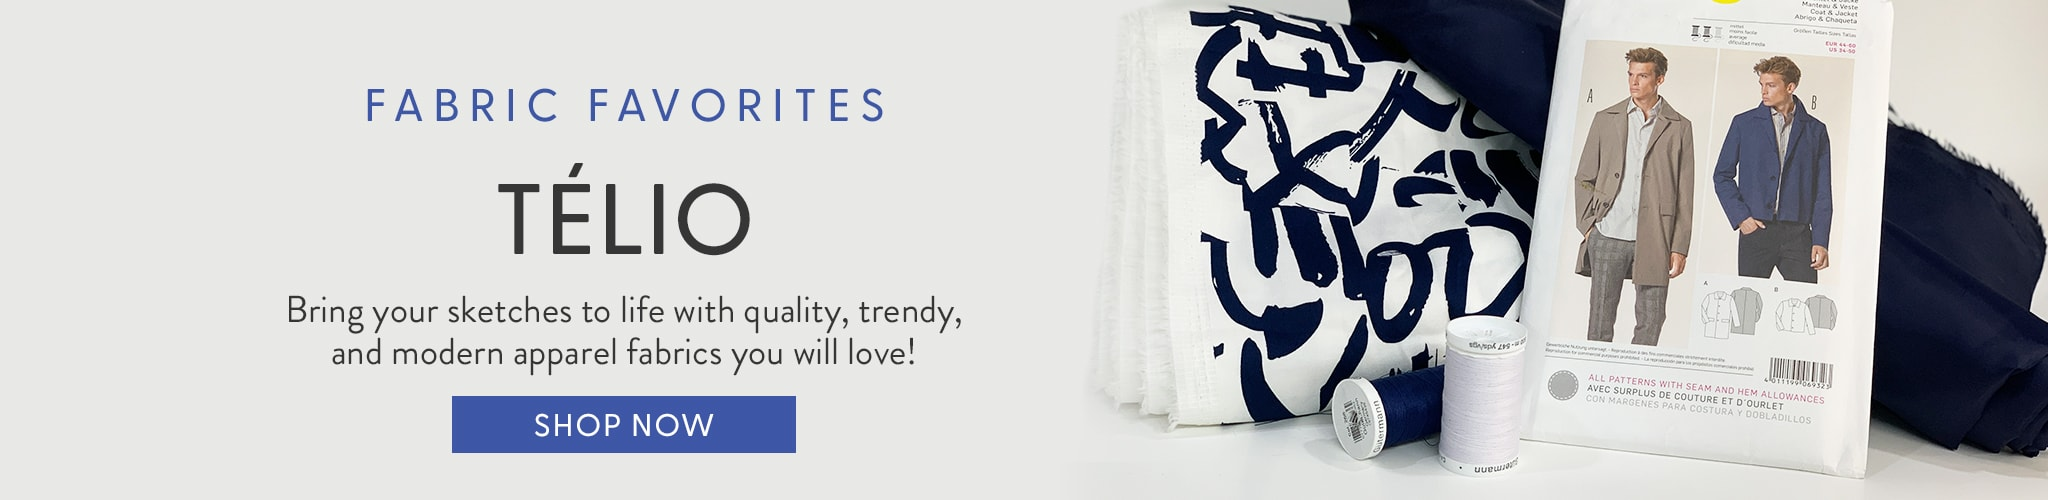 Fabric Favorites - Telio - Bring your sketches to life with quality, trendy, and modern apparel fabrics